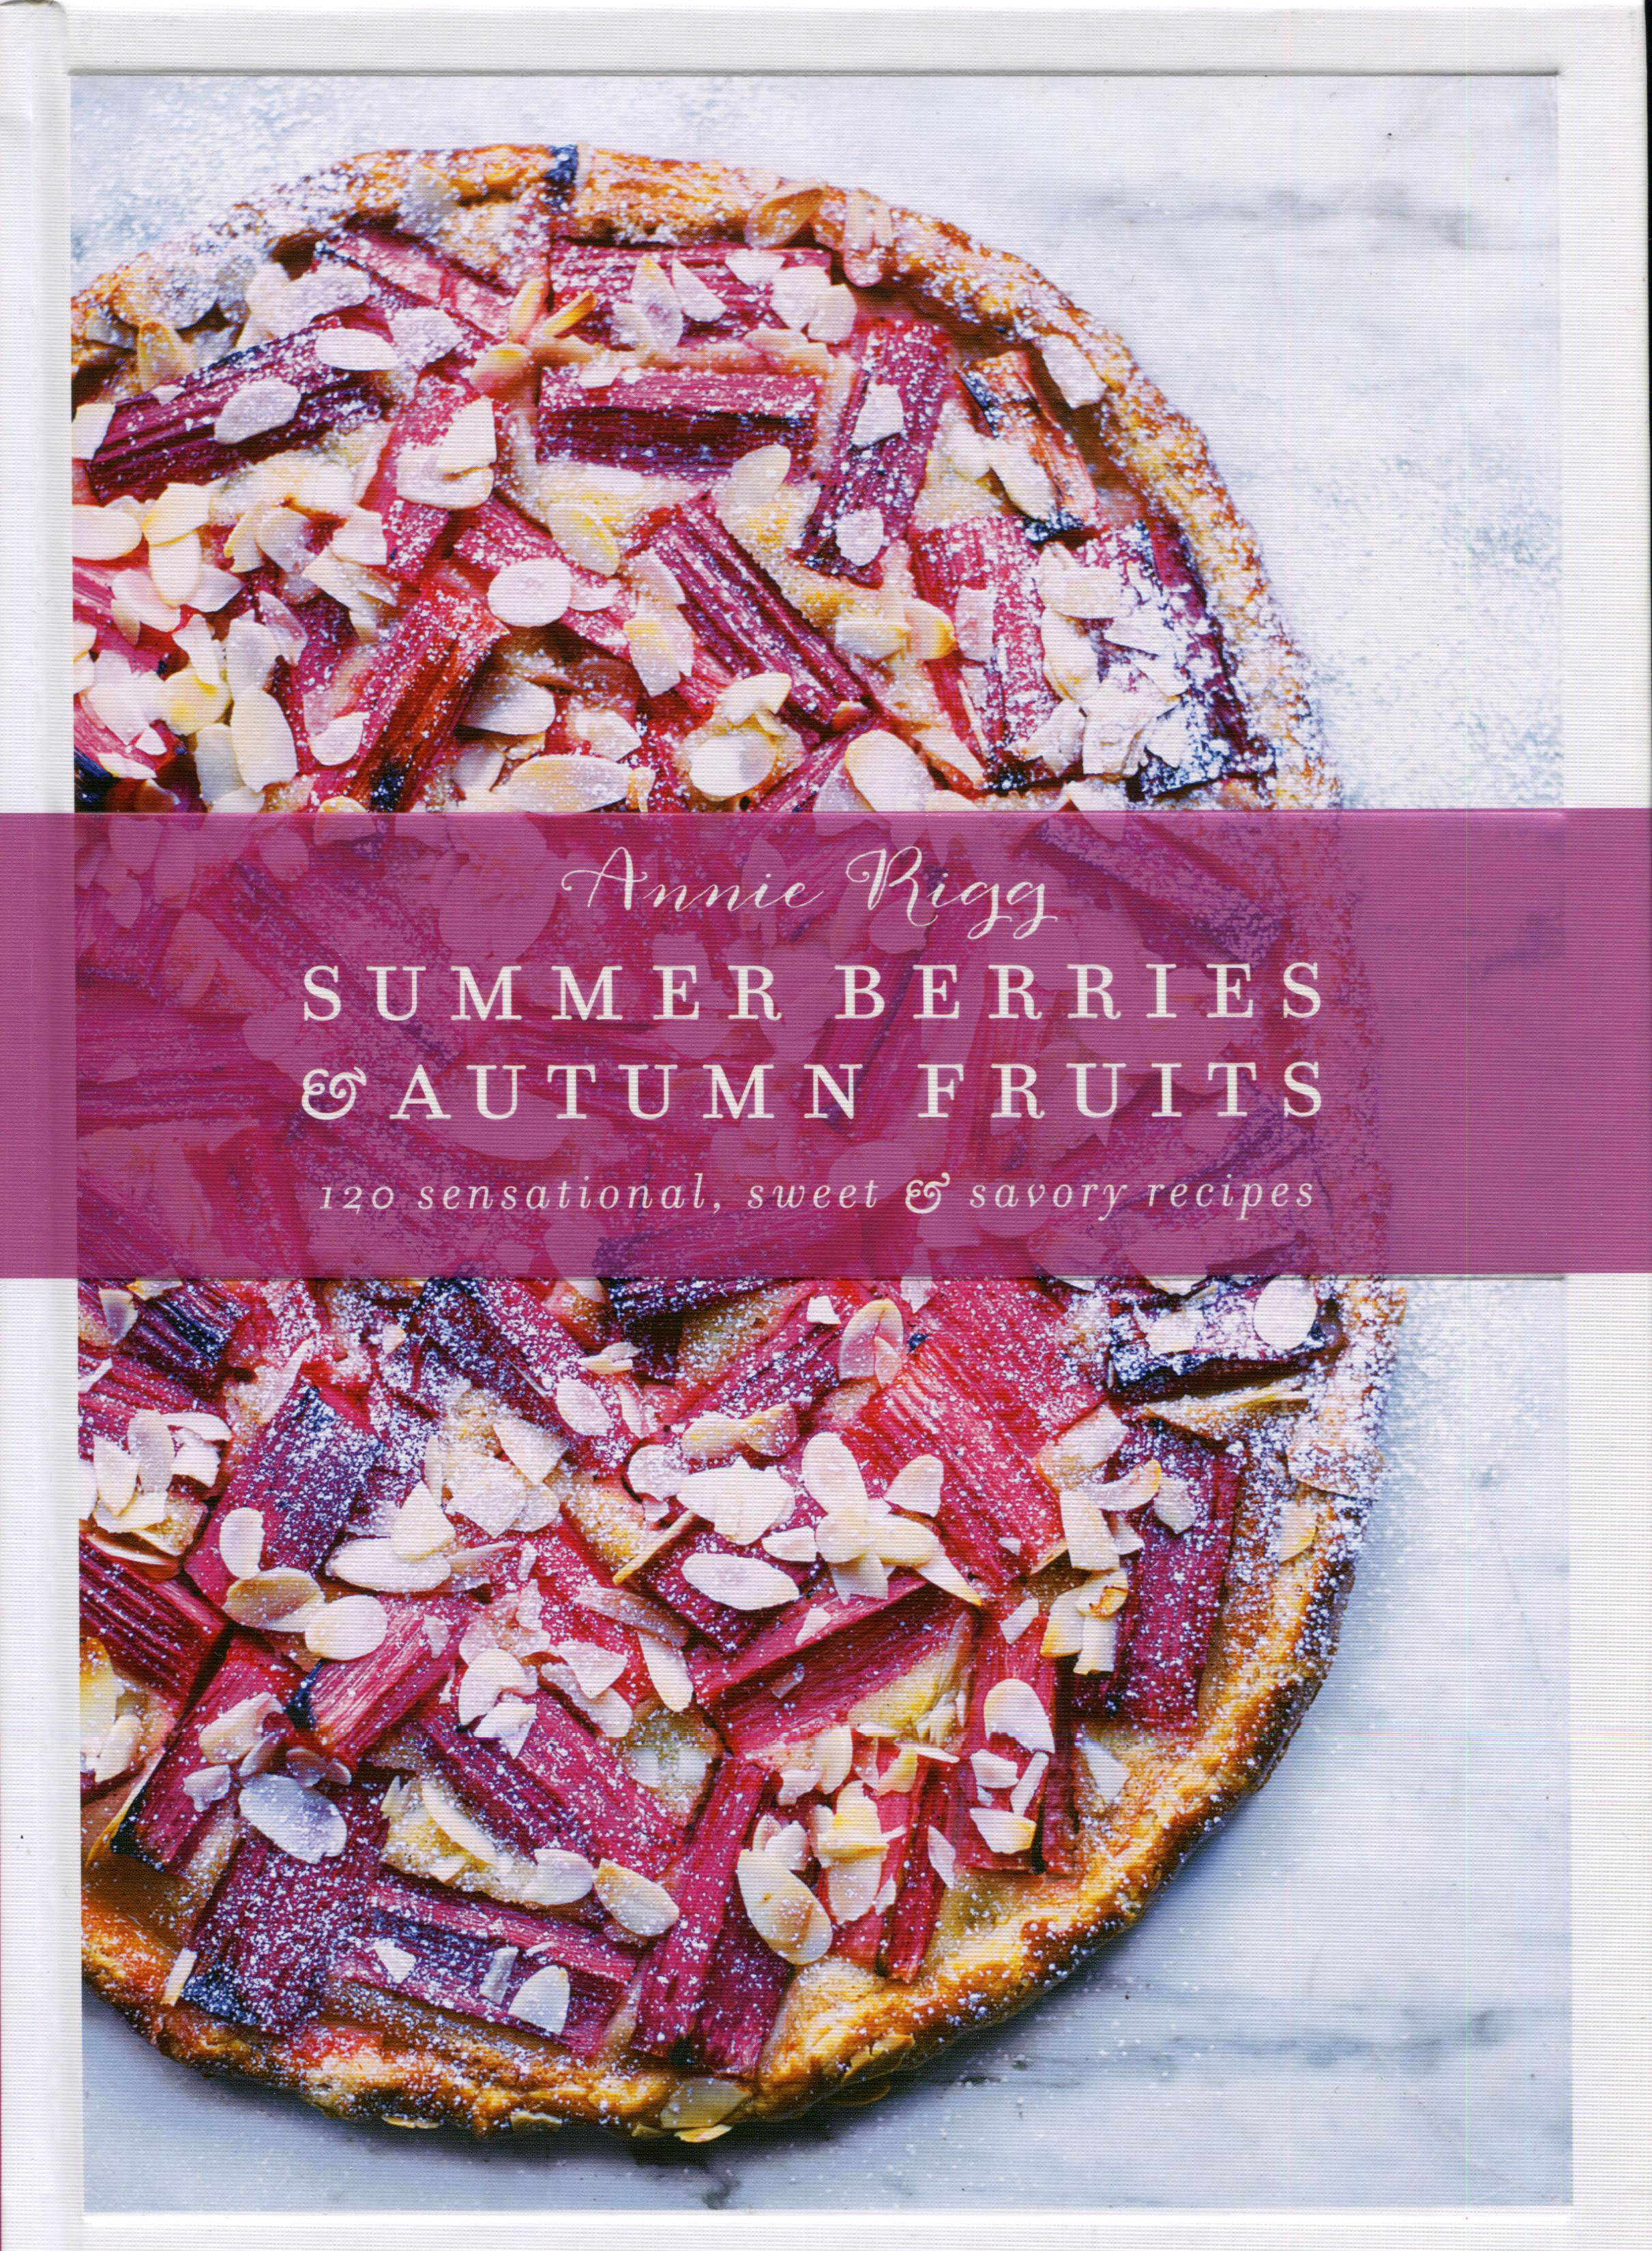 TBT Cookbook Review: Summer Berries and Autumn Fruits